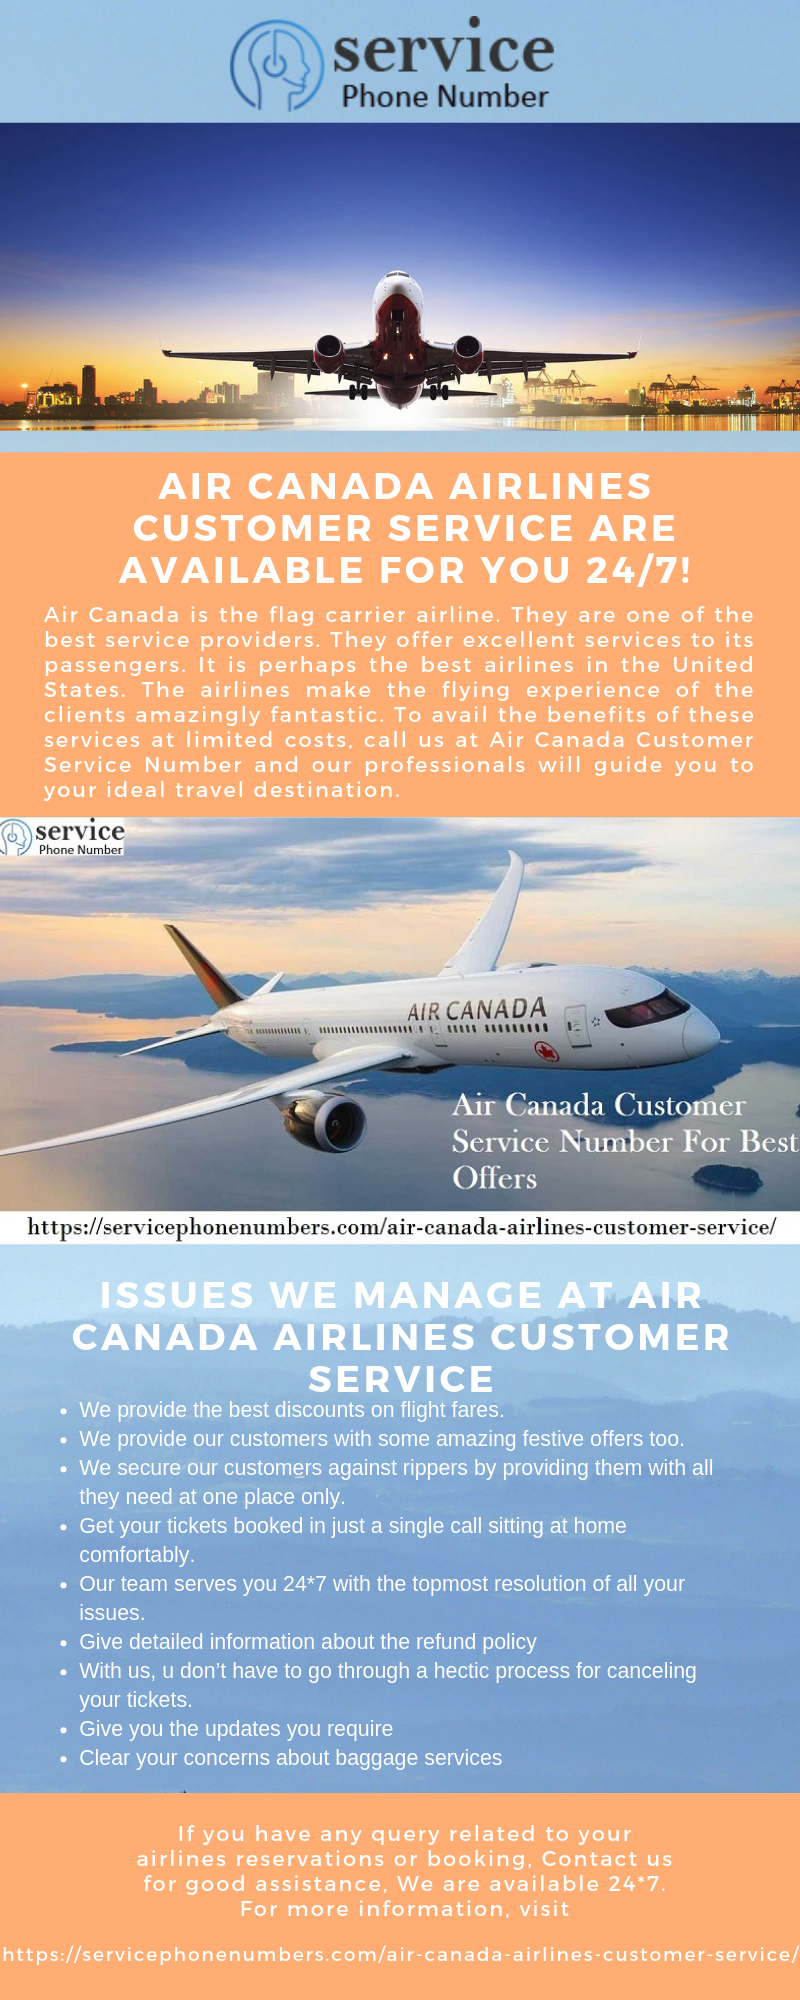 Air Canada Airlines Customer Service Are Available For You 24/7!